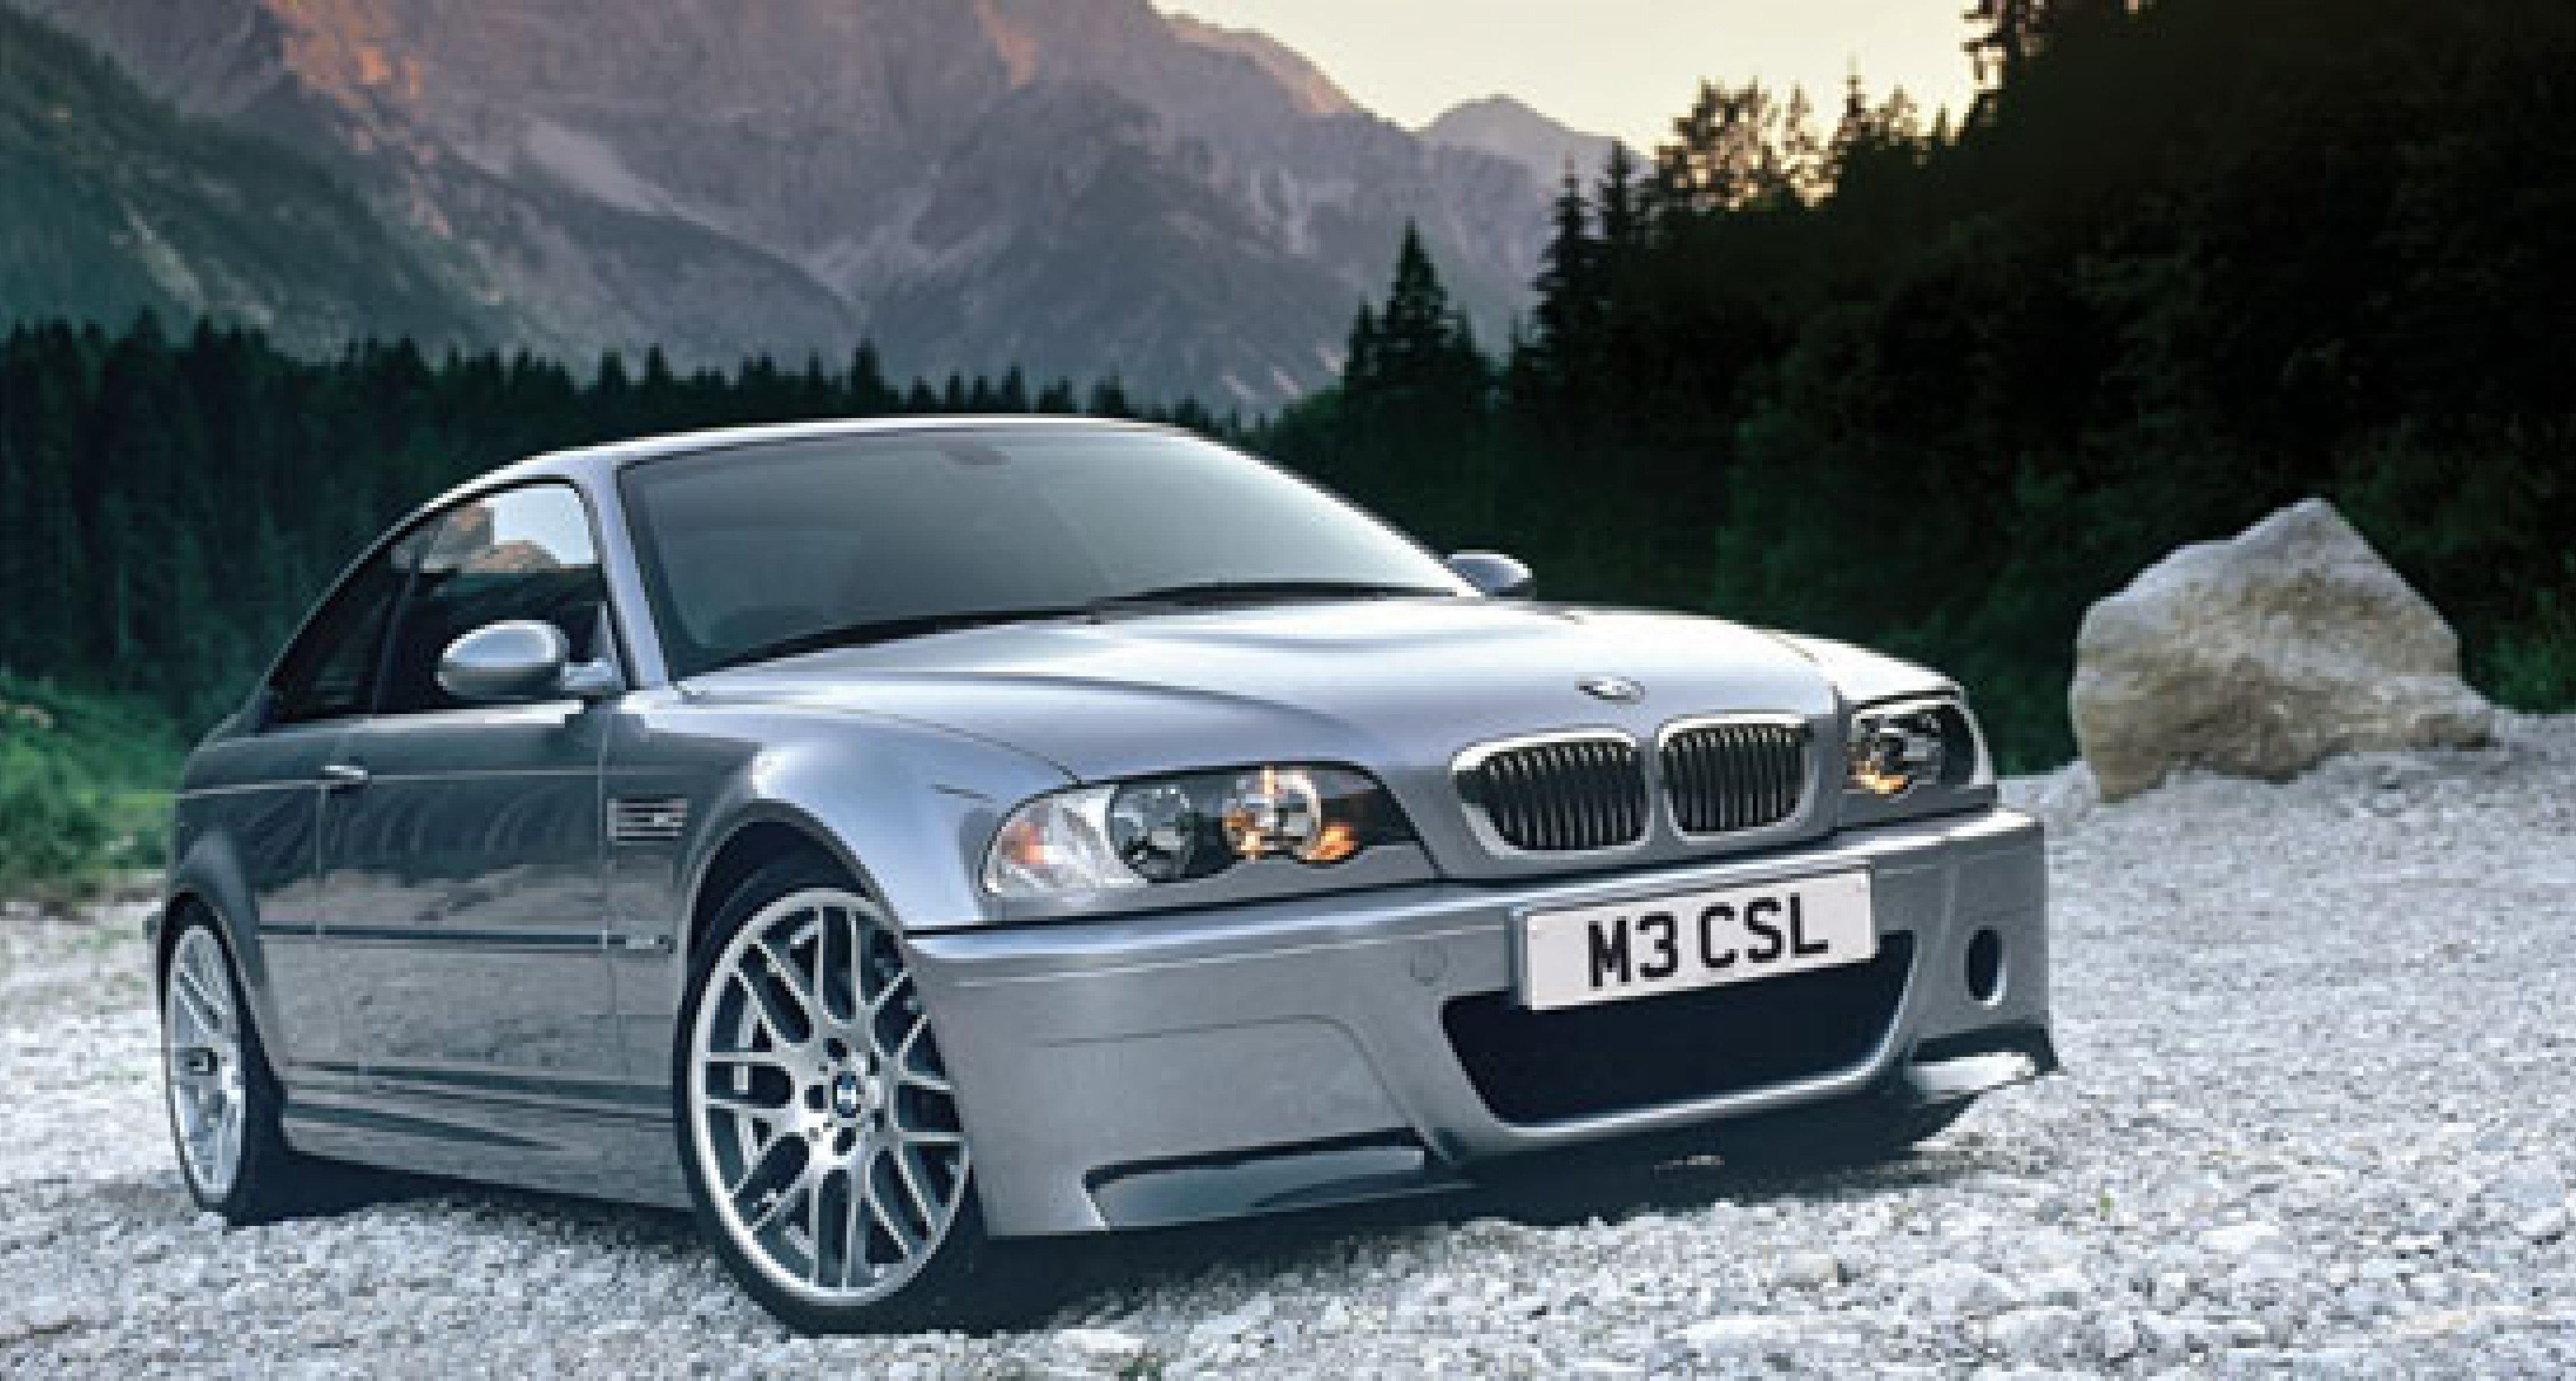 The end of an era - the BMW M3 CSL